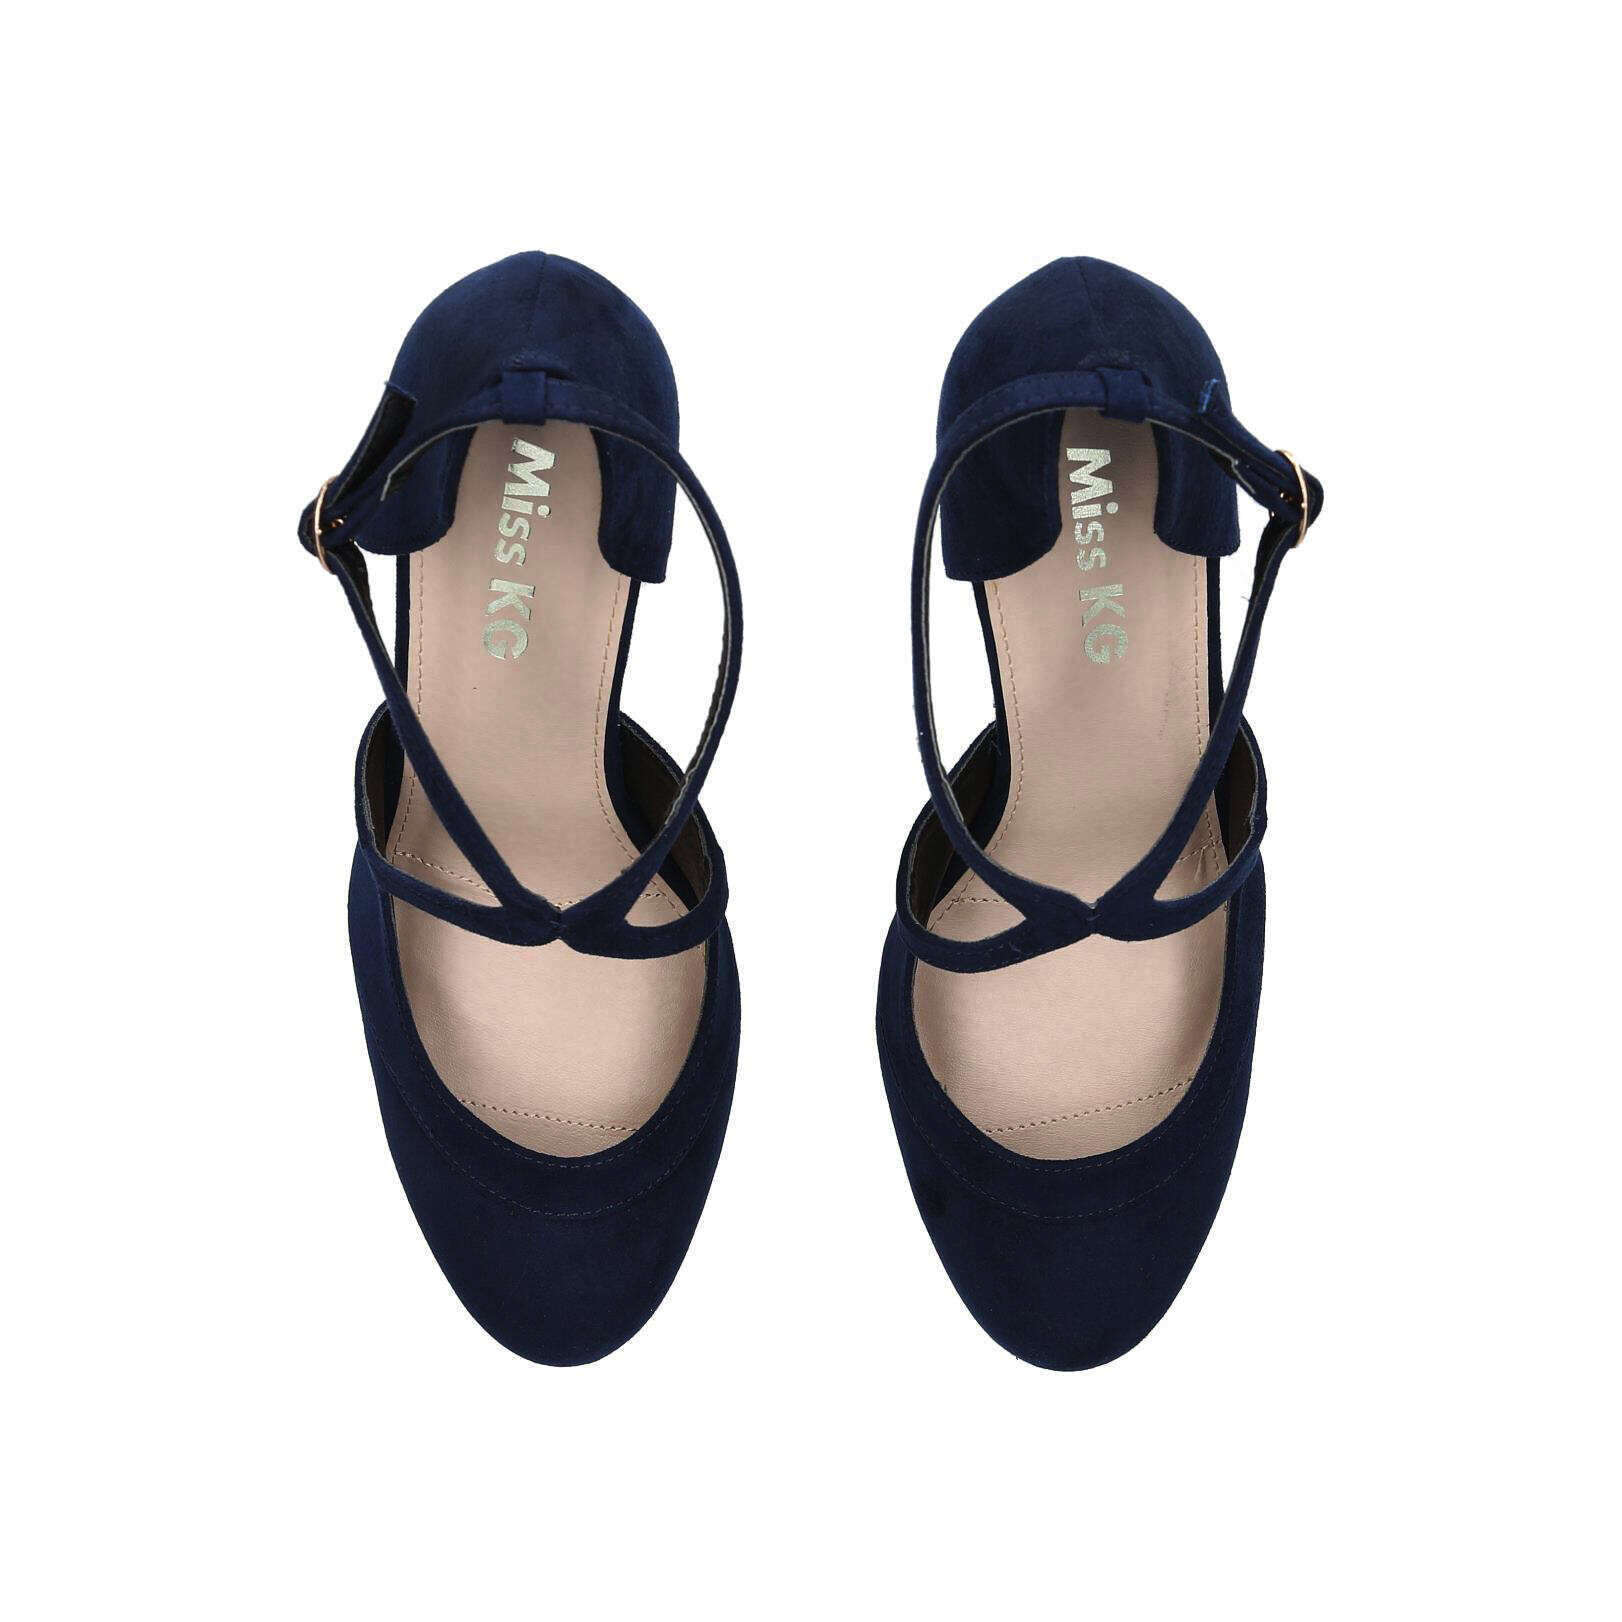 Womens Shoes Navy Blue Pumps